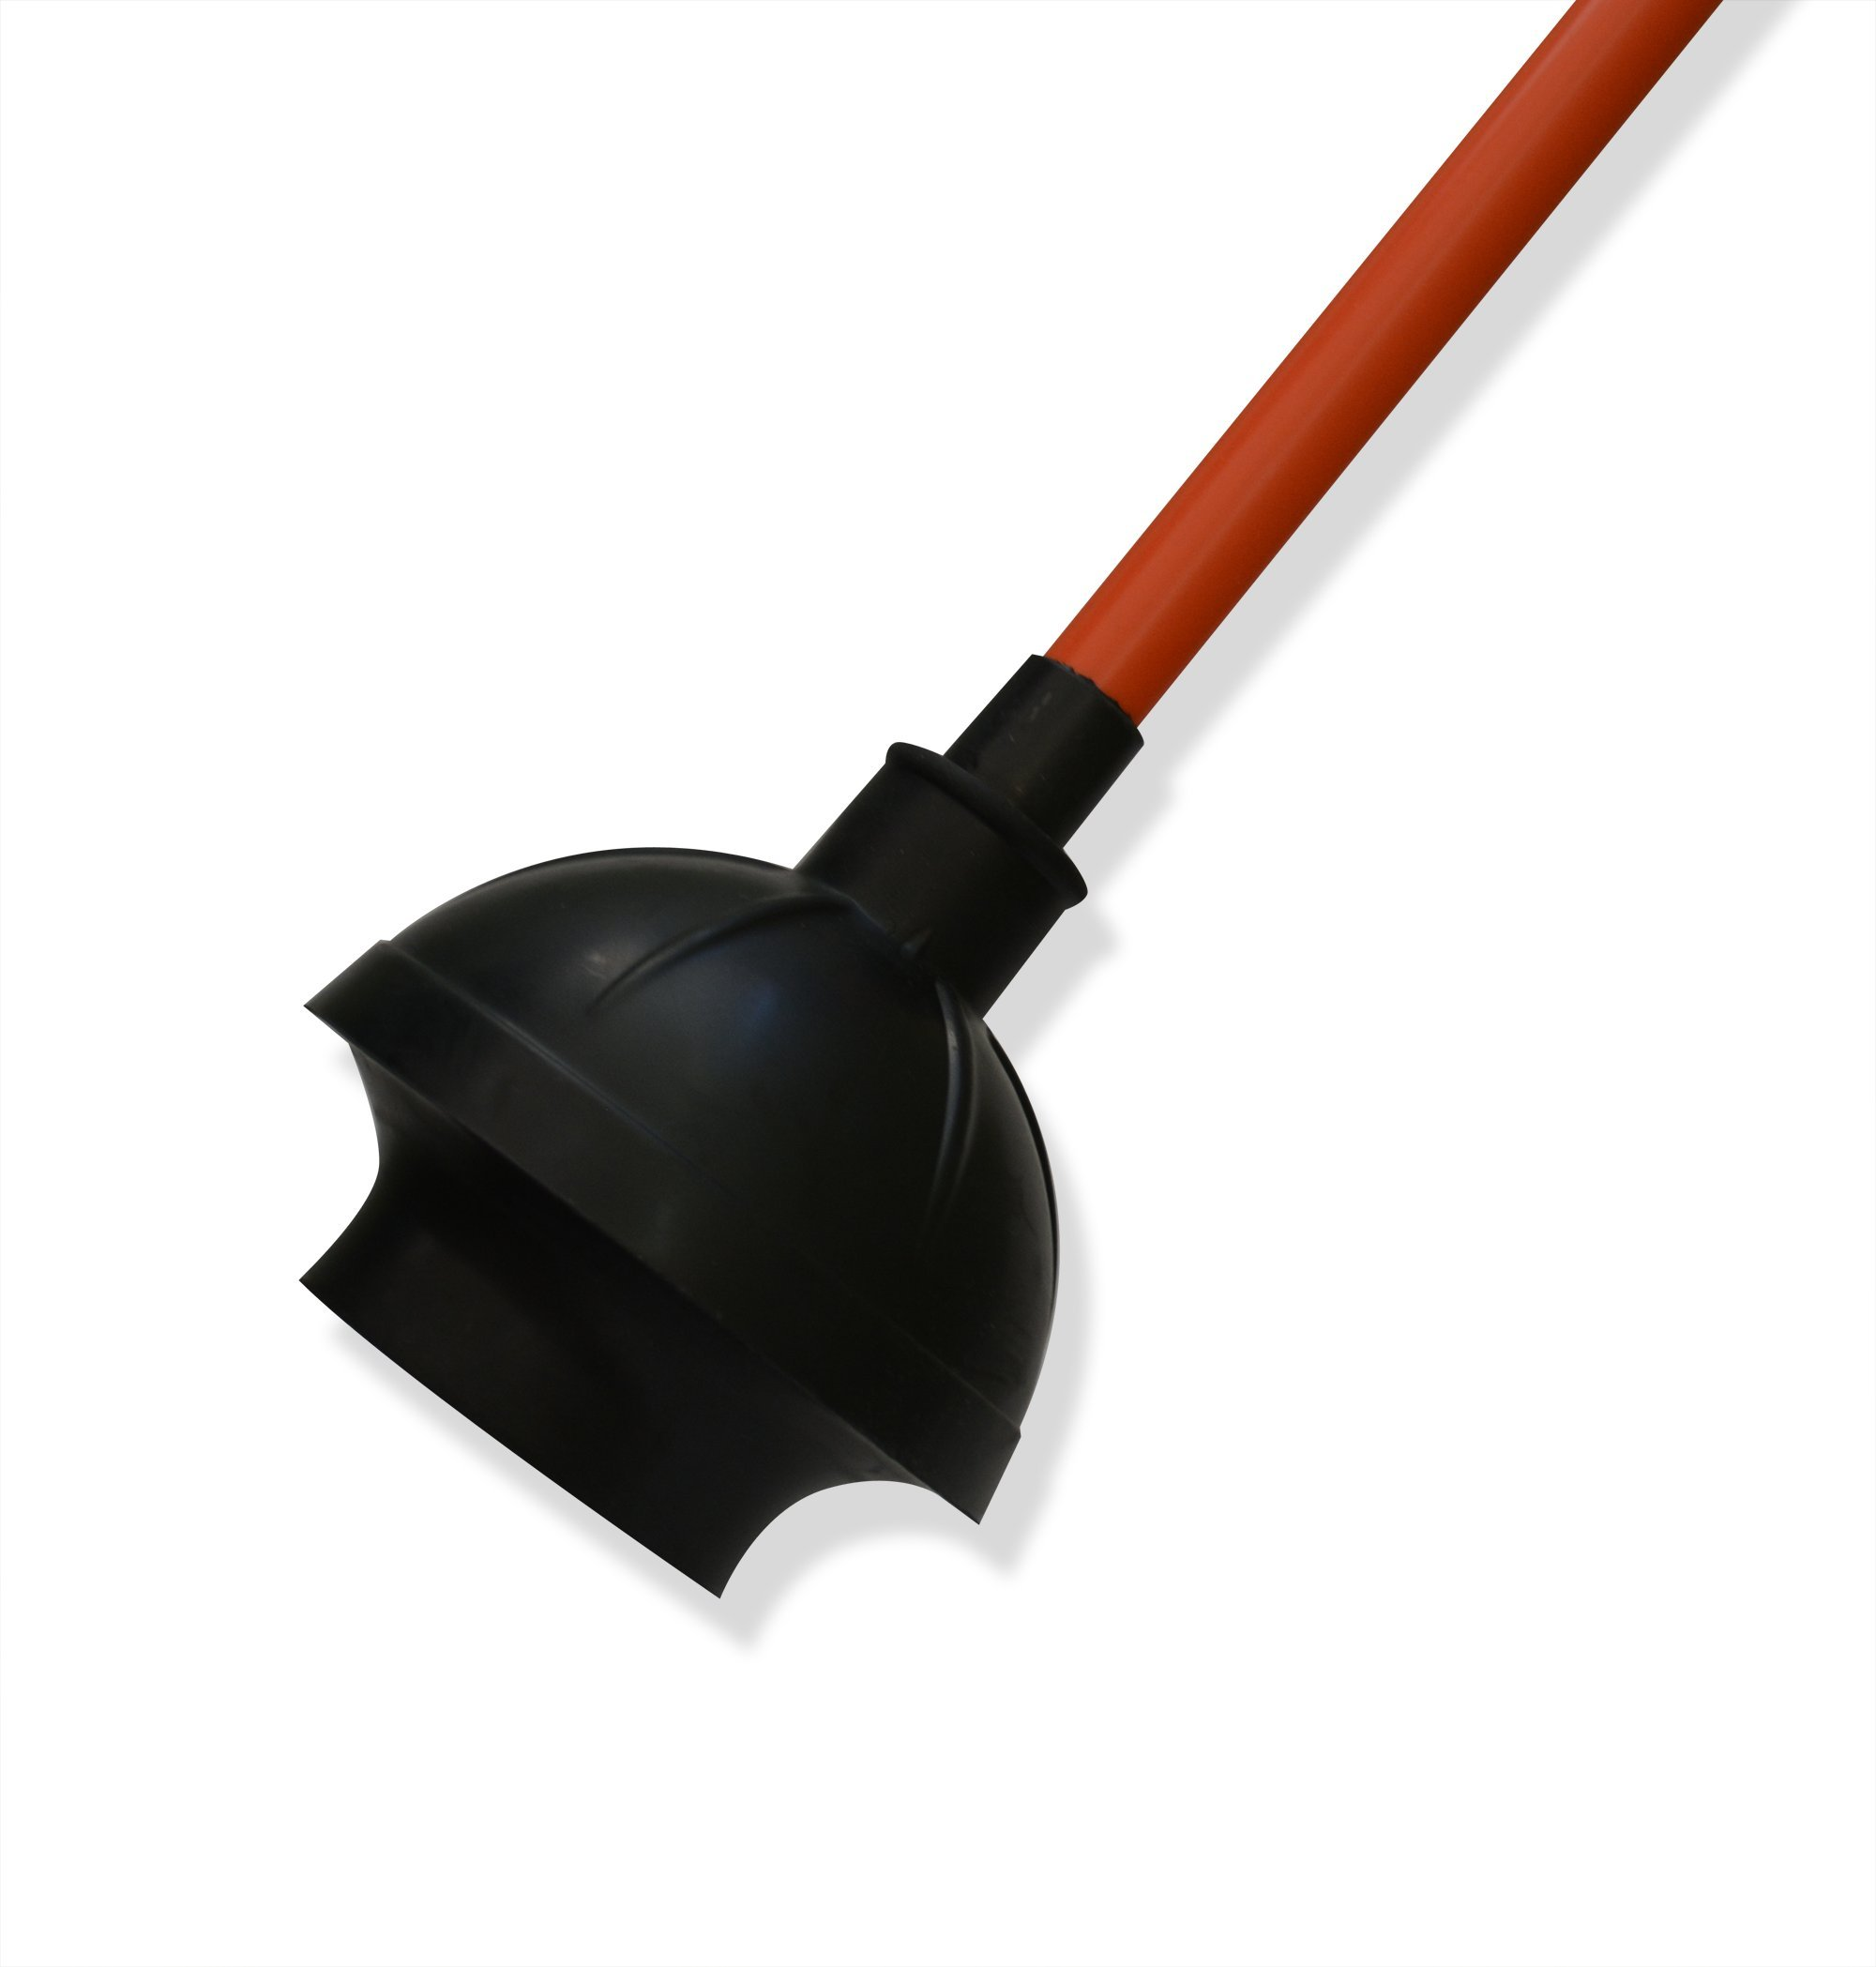 Get Bats Out Rubber Toilet Plunger for Bathroom, Sink & Drain Clogs - Use in Homes, Commercial & Industrial bldgs